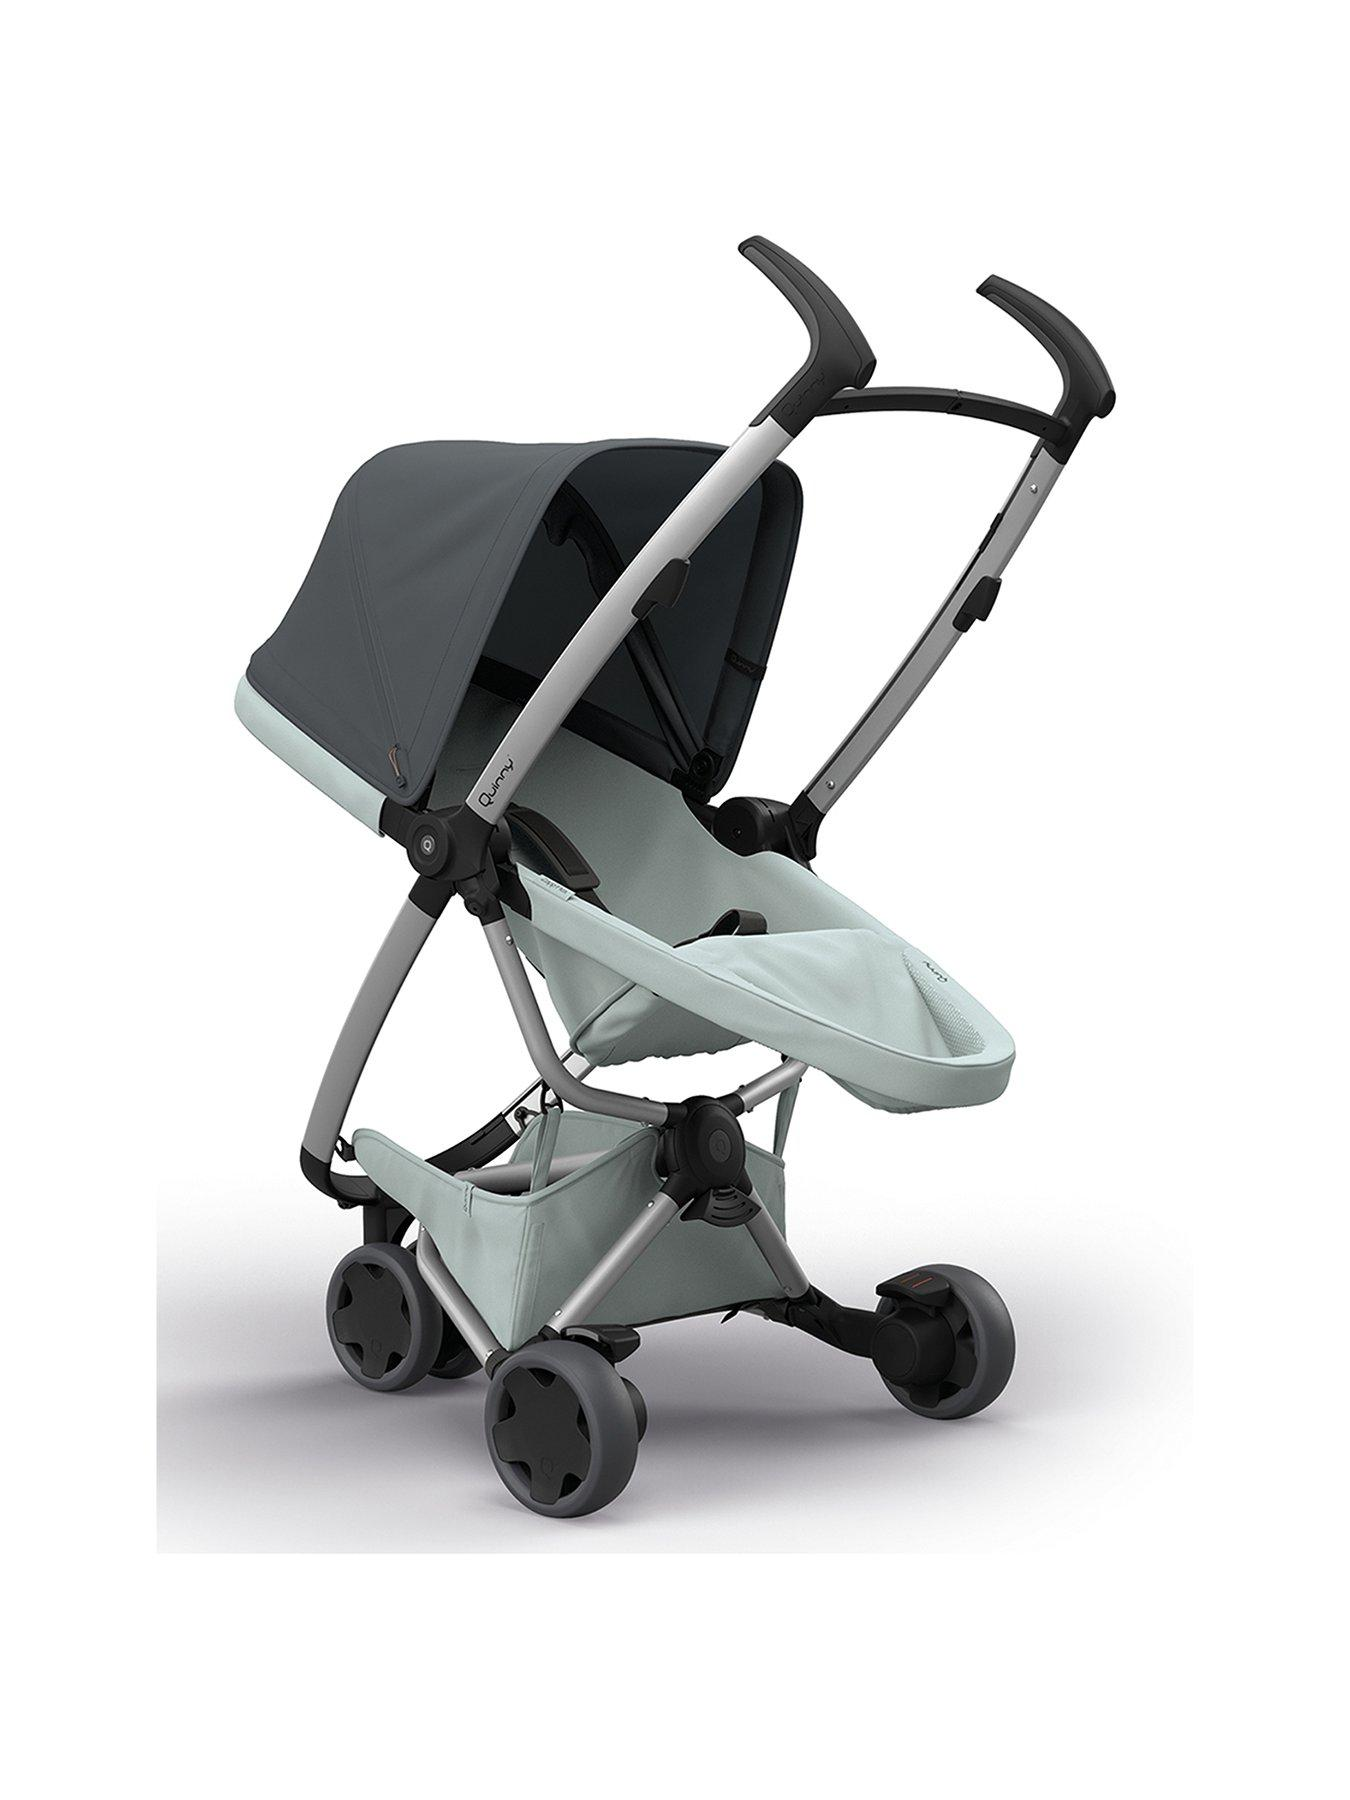 142 Raincover compatible with Quinny Zapp Zapp Xtra Buggy